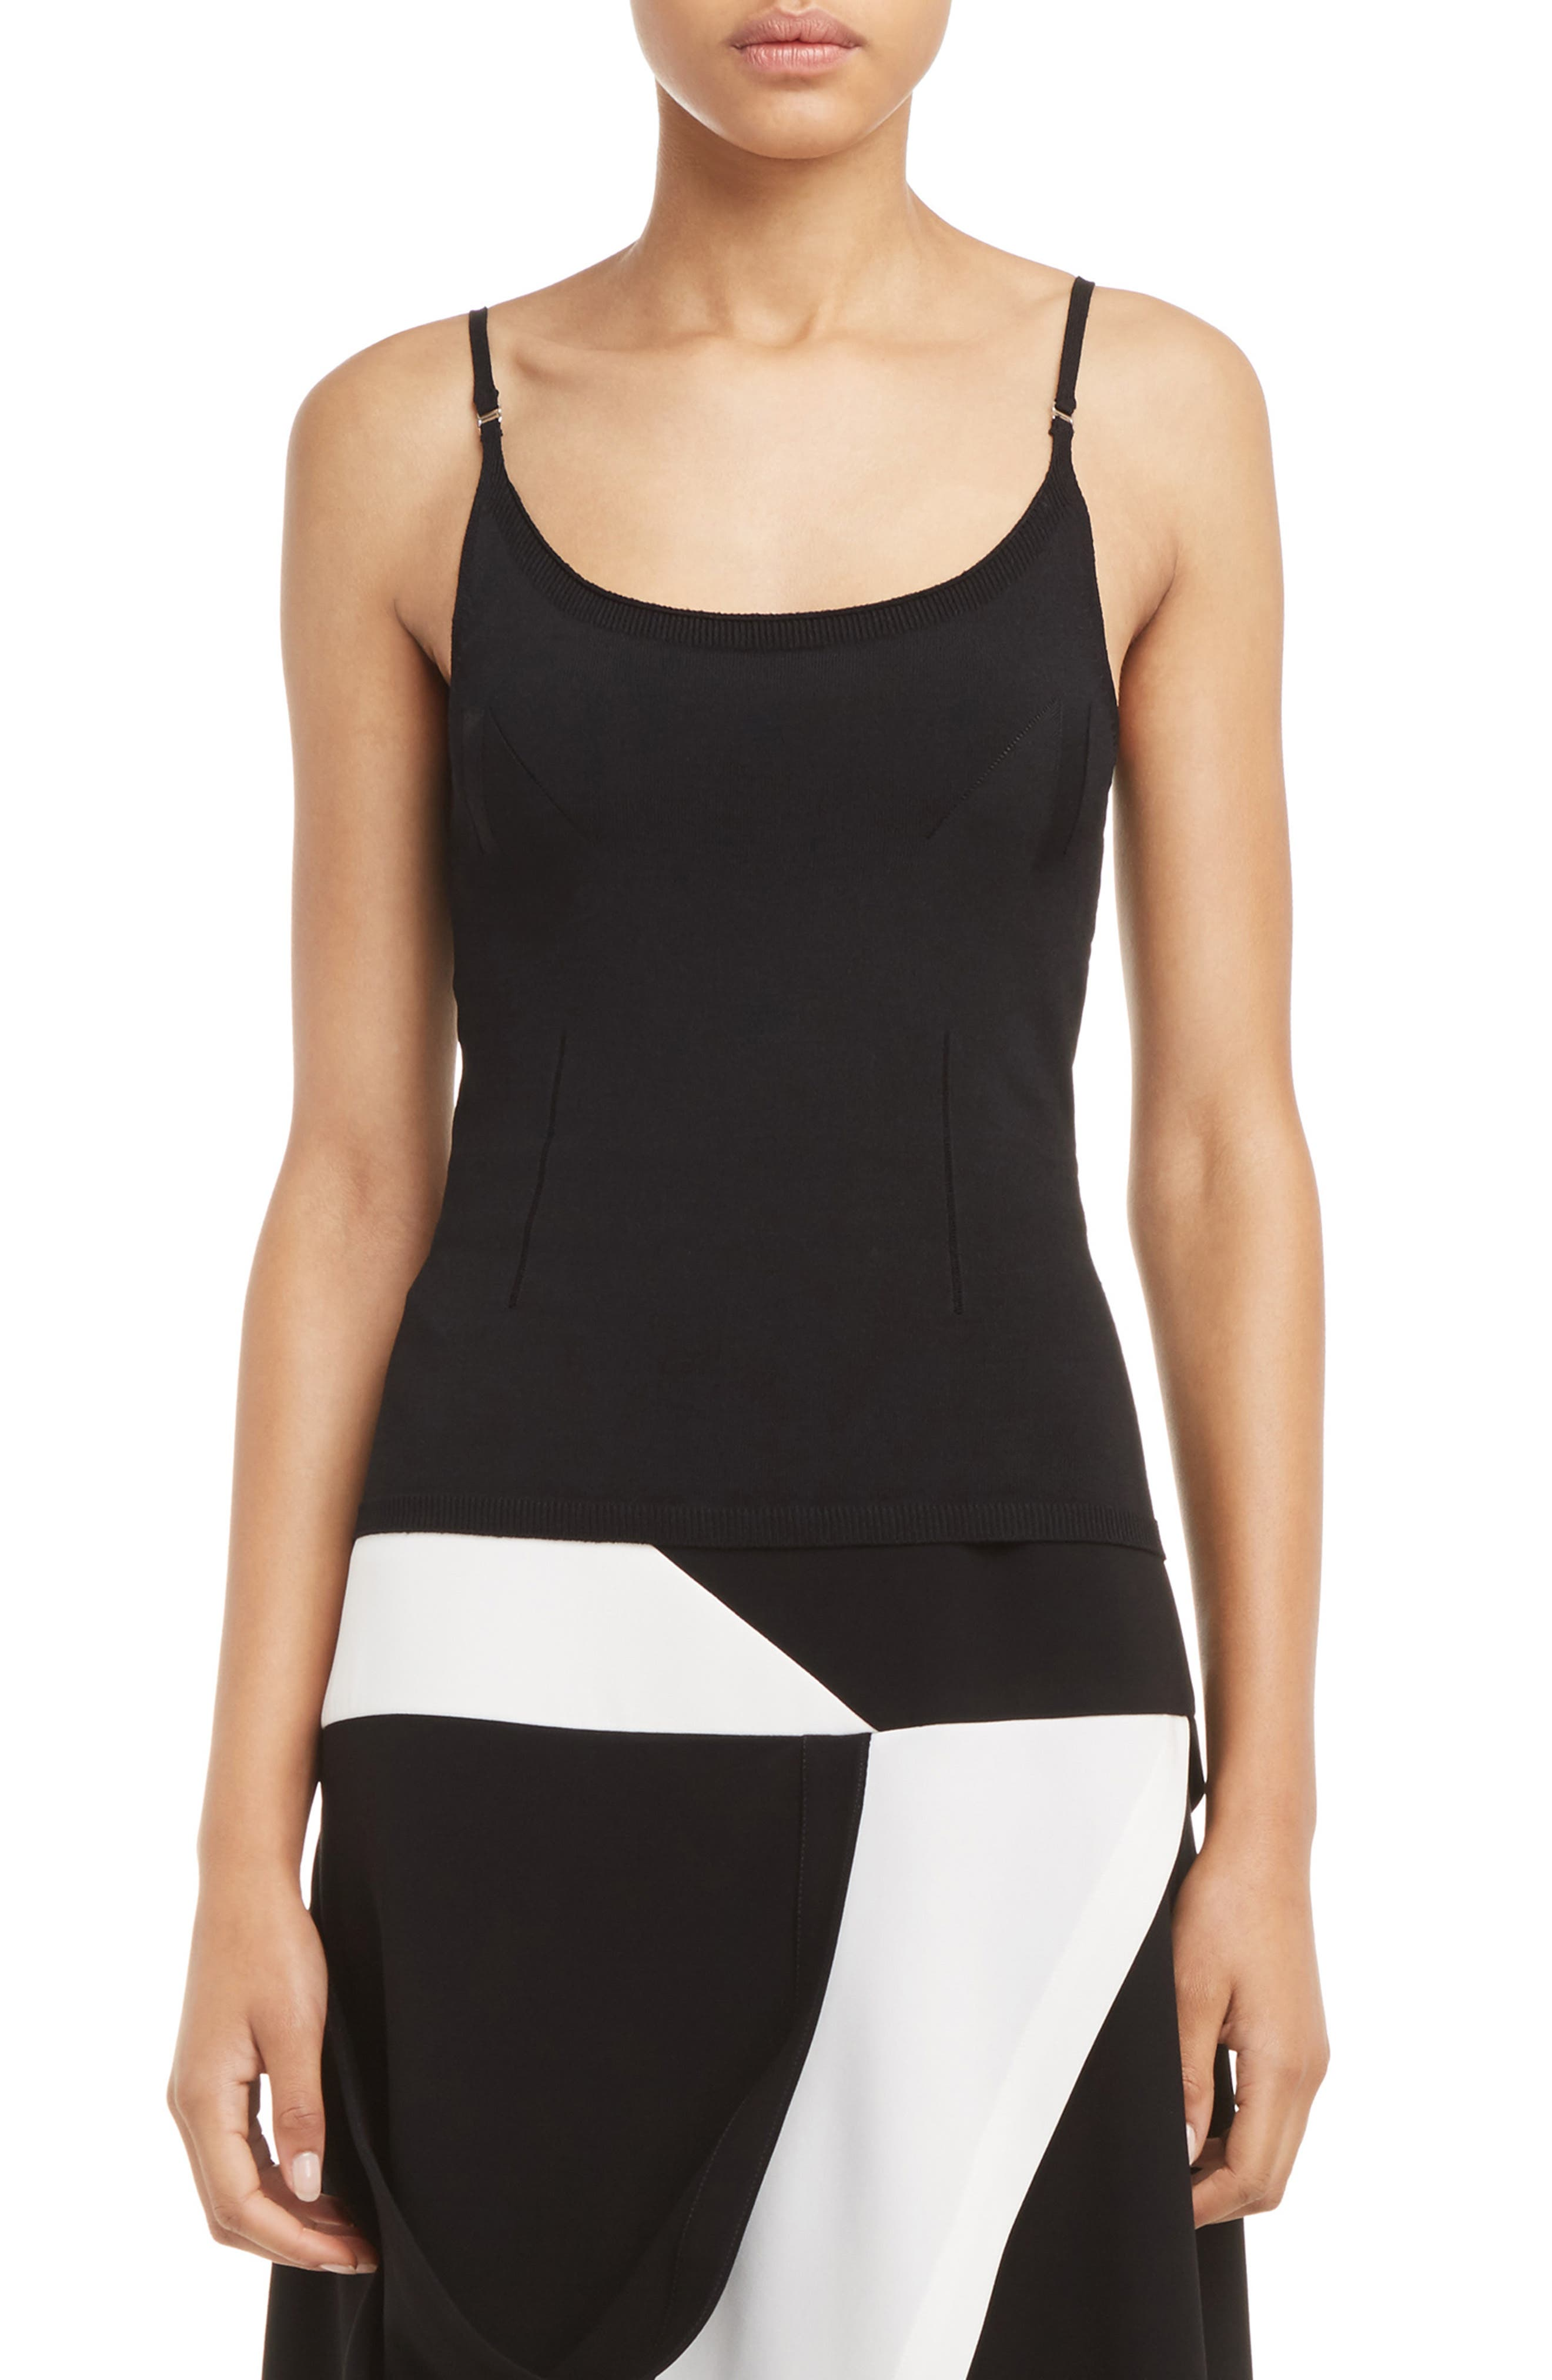 J.W.ANDERSON Geometric Camisole,                             Main thumbnail 1, color,                             001